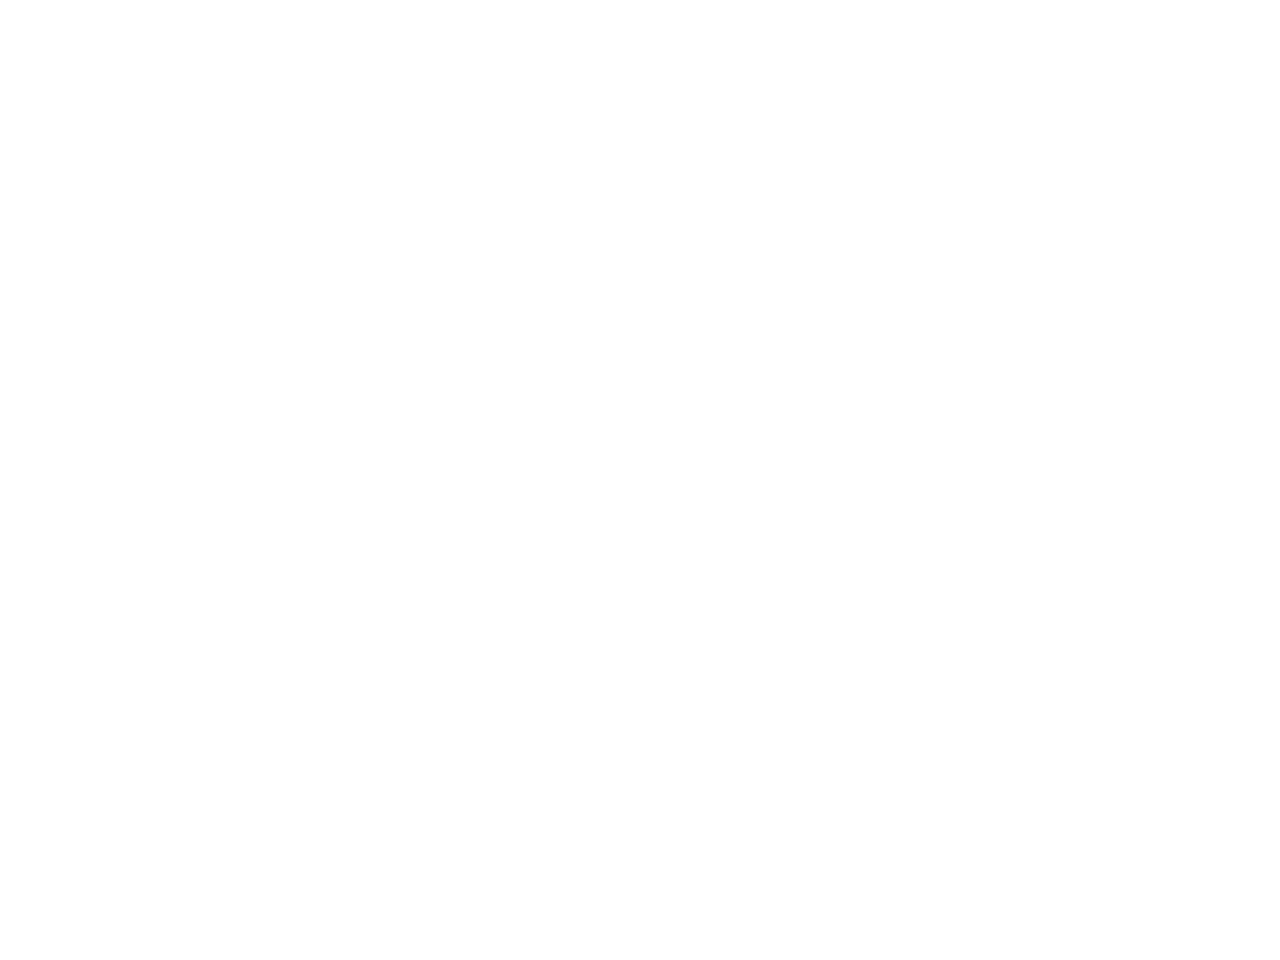 NANO Security